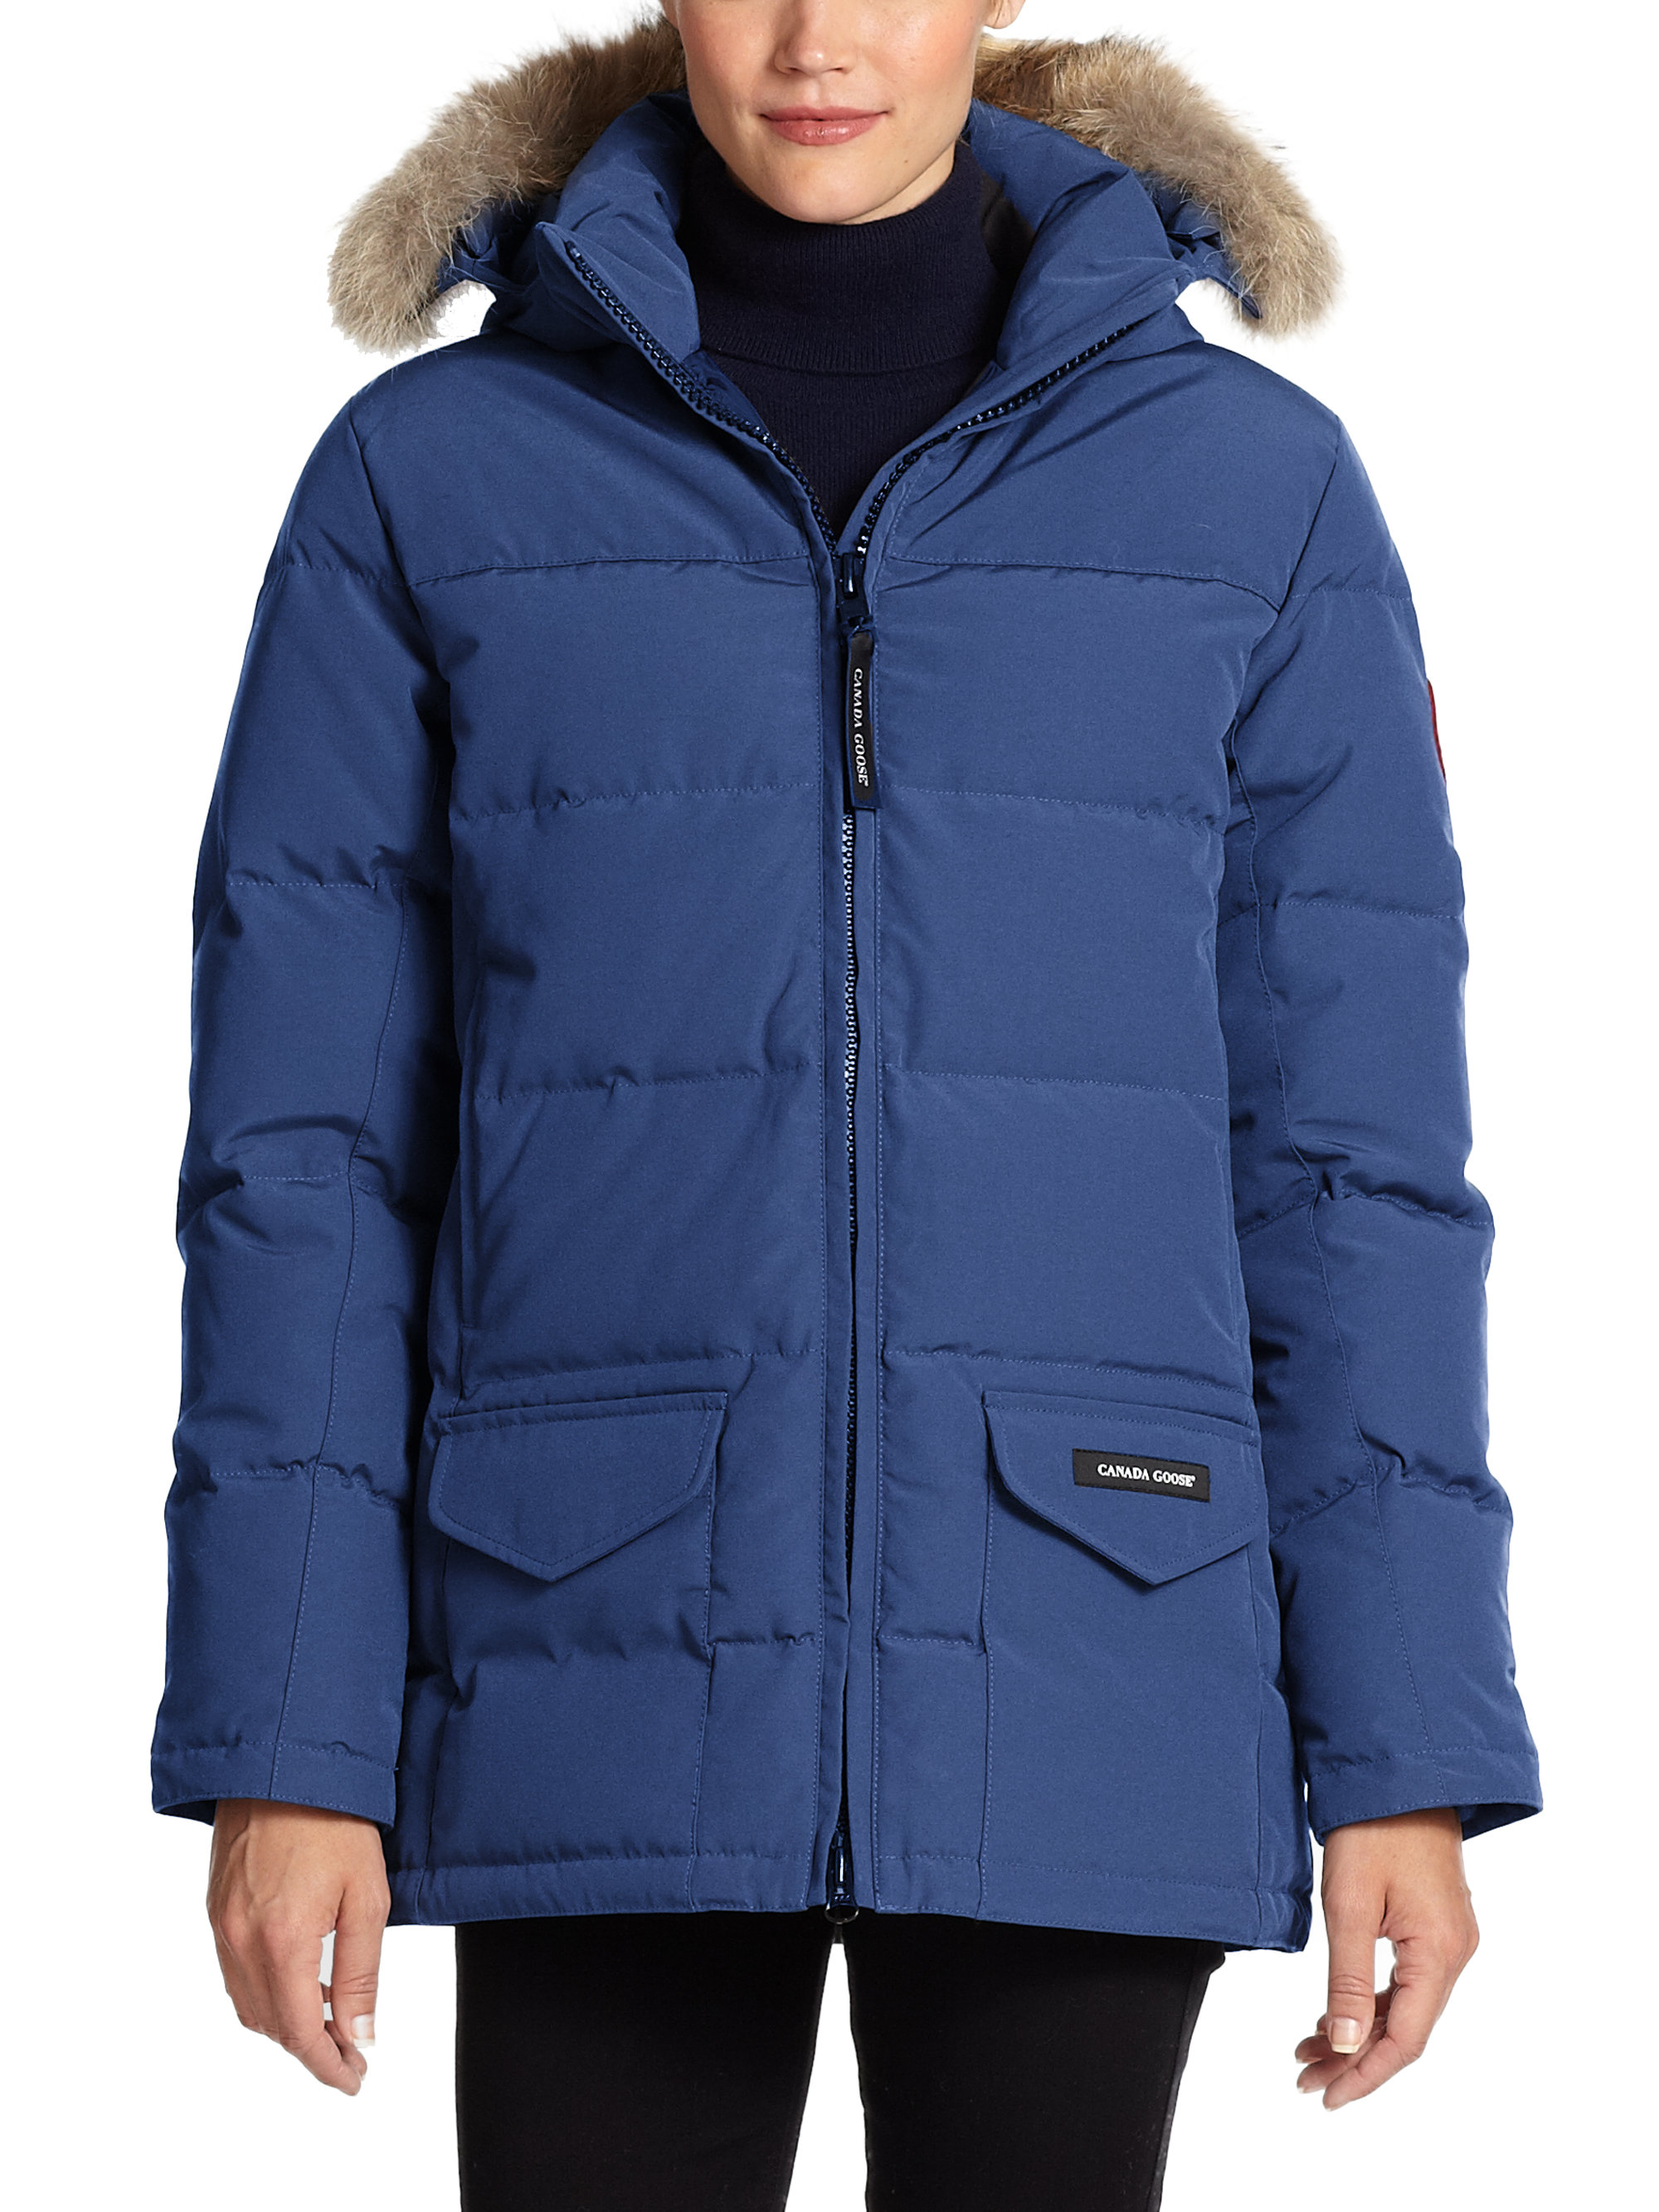 how to clean goose down jacket